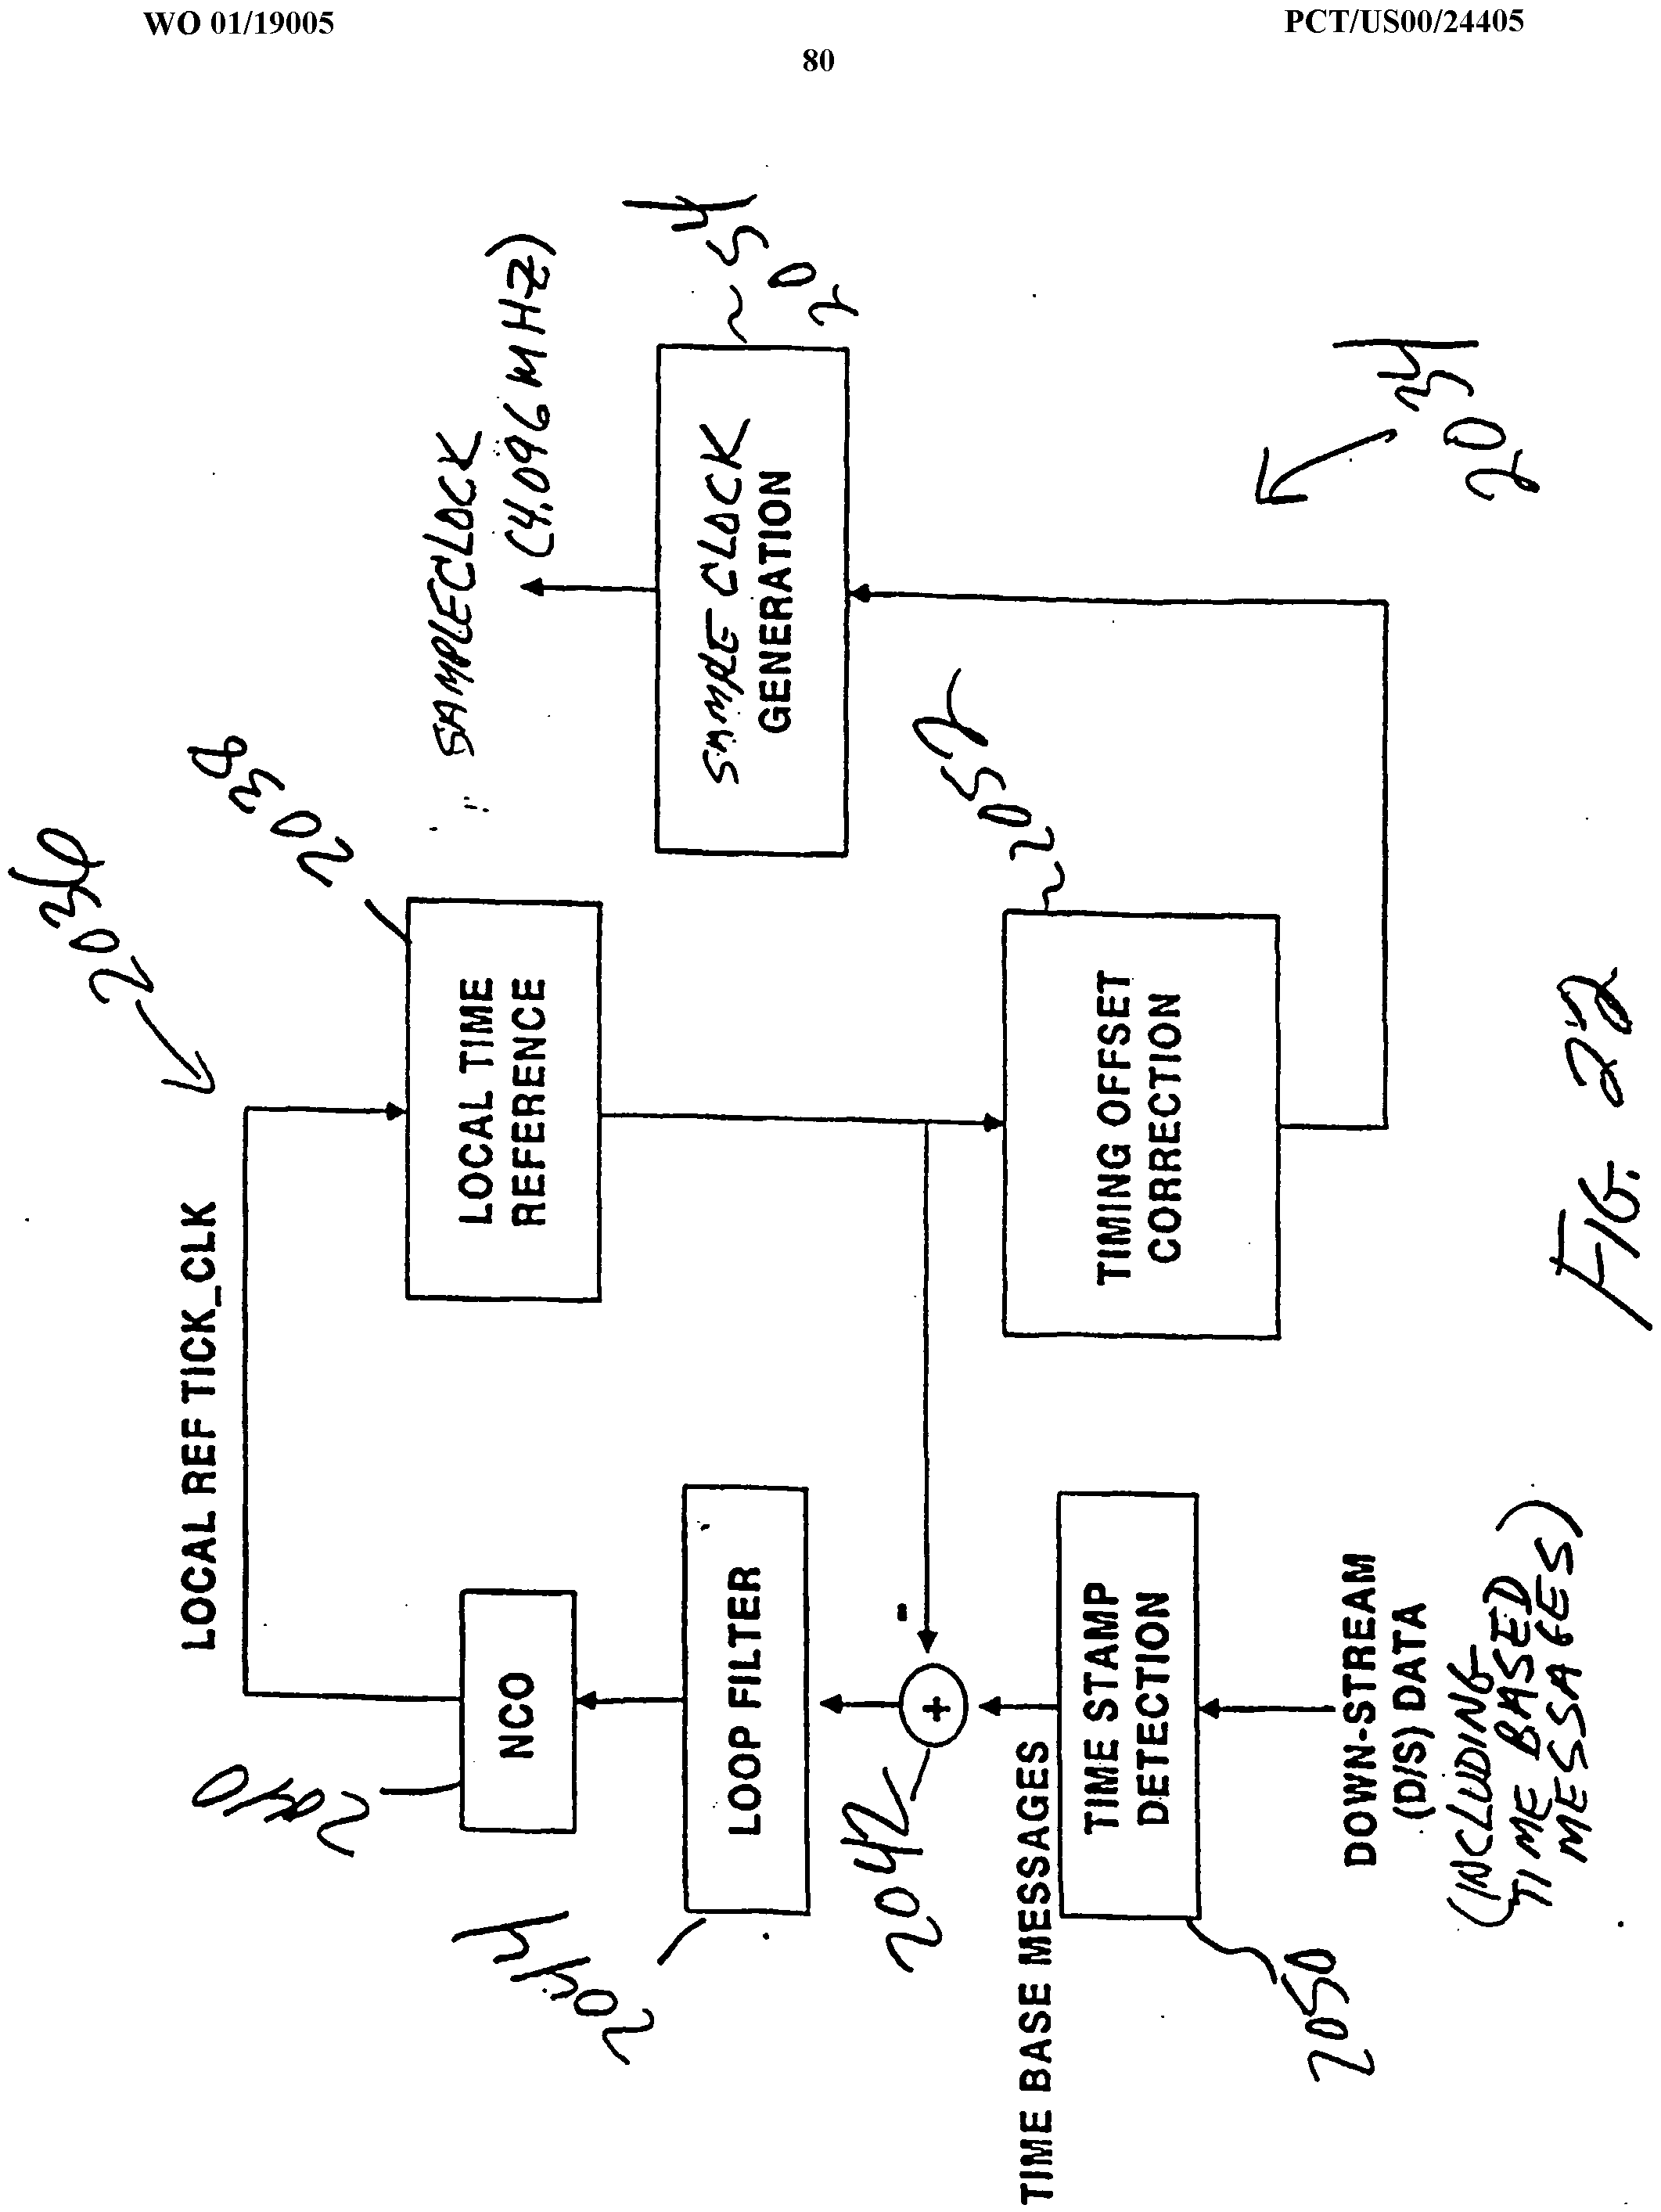 Wo2001019005a1 System And Method For The Synchronization Four Five Channel Rc Cars Tx Rx Circuits Using Metal Gate Cmos Figure Imgf000081 0001